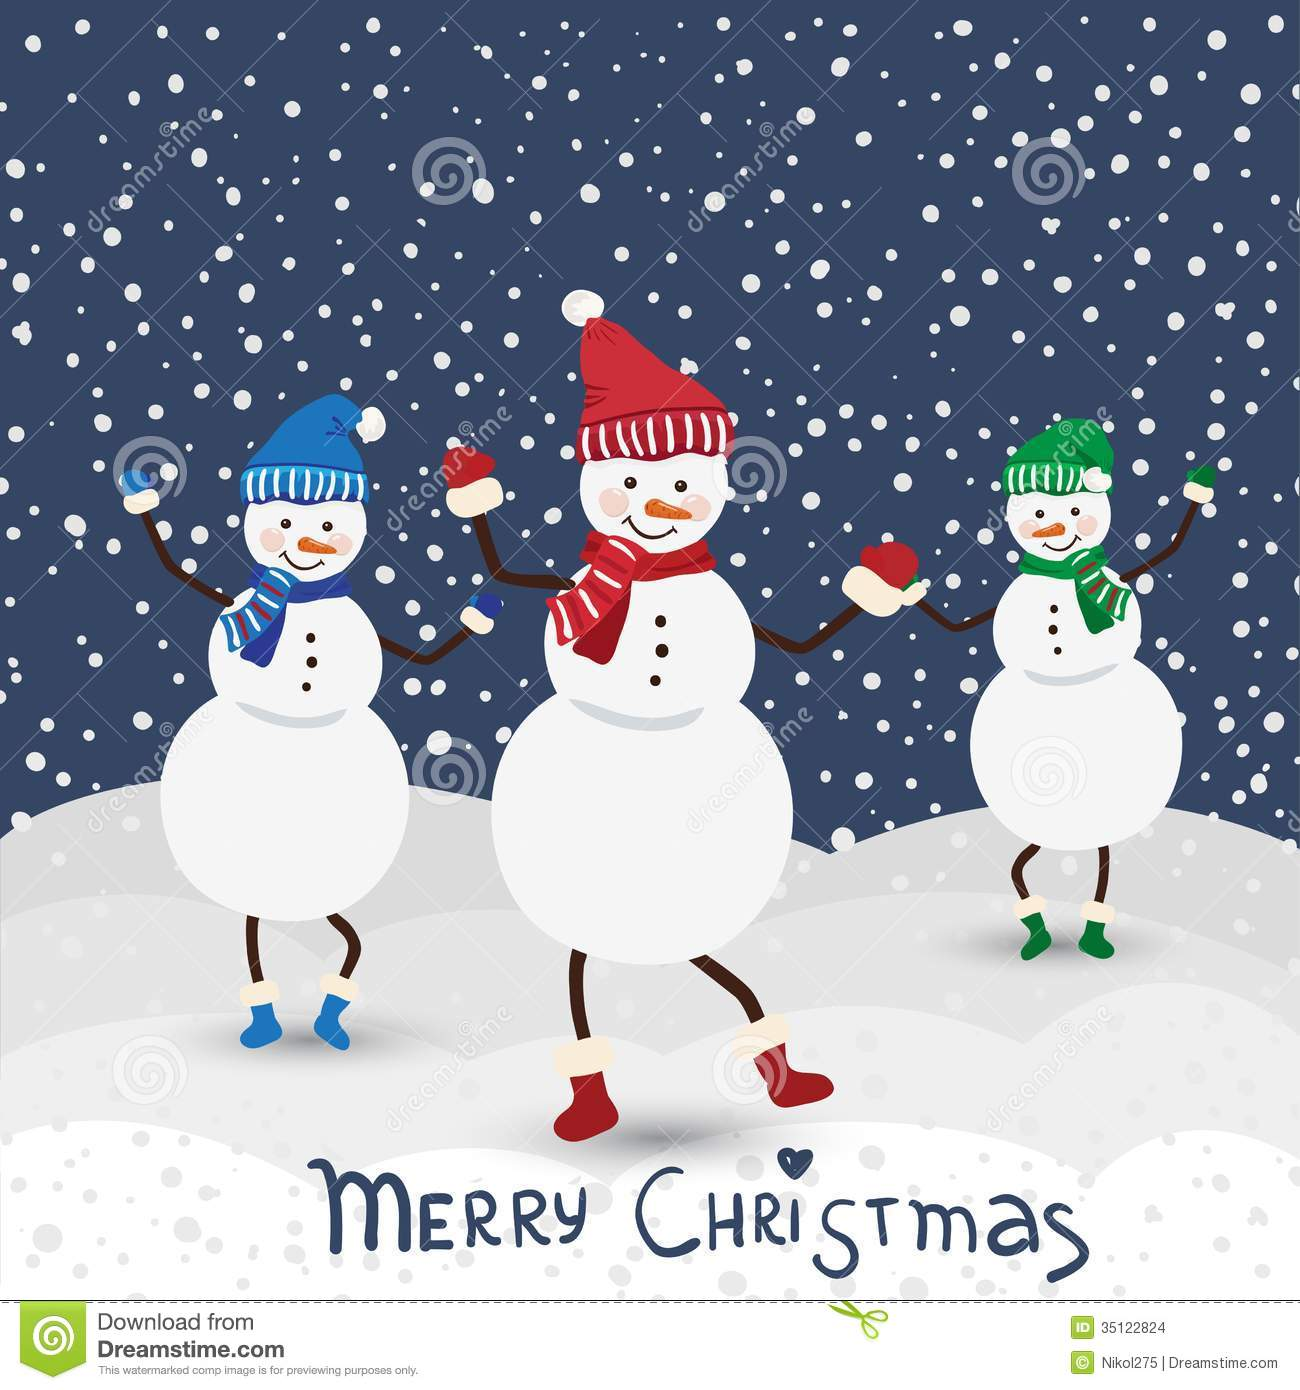 christmas music card with dance snowman - Christmas Music Download